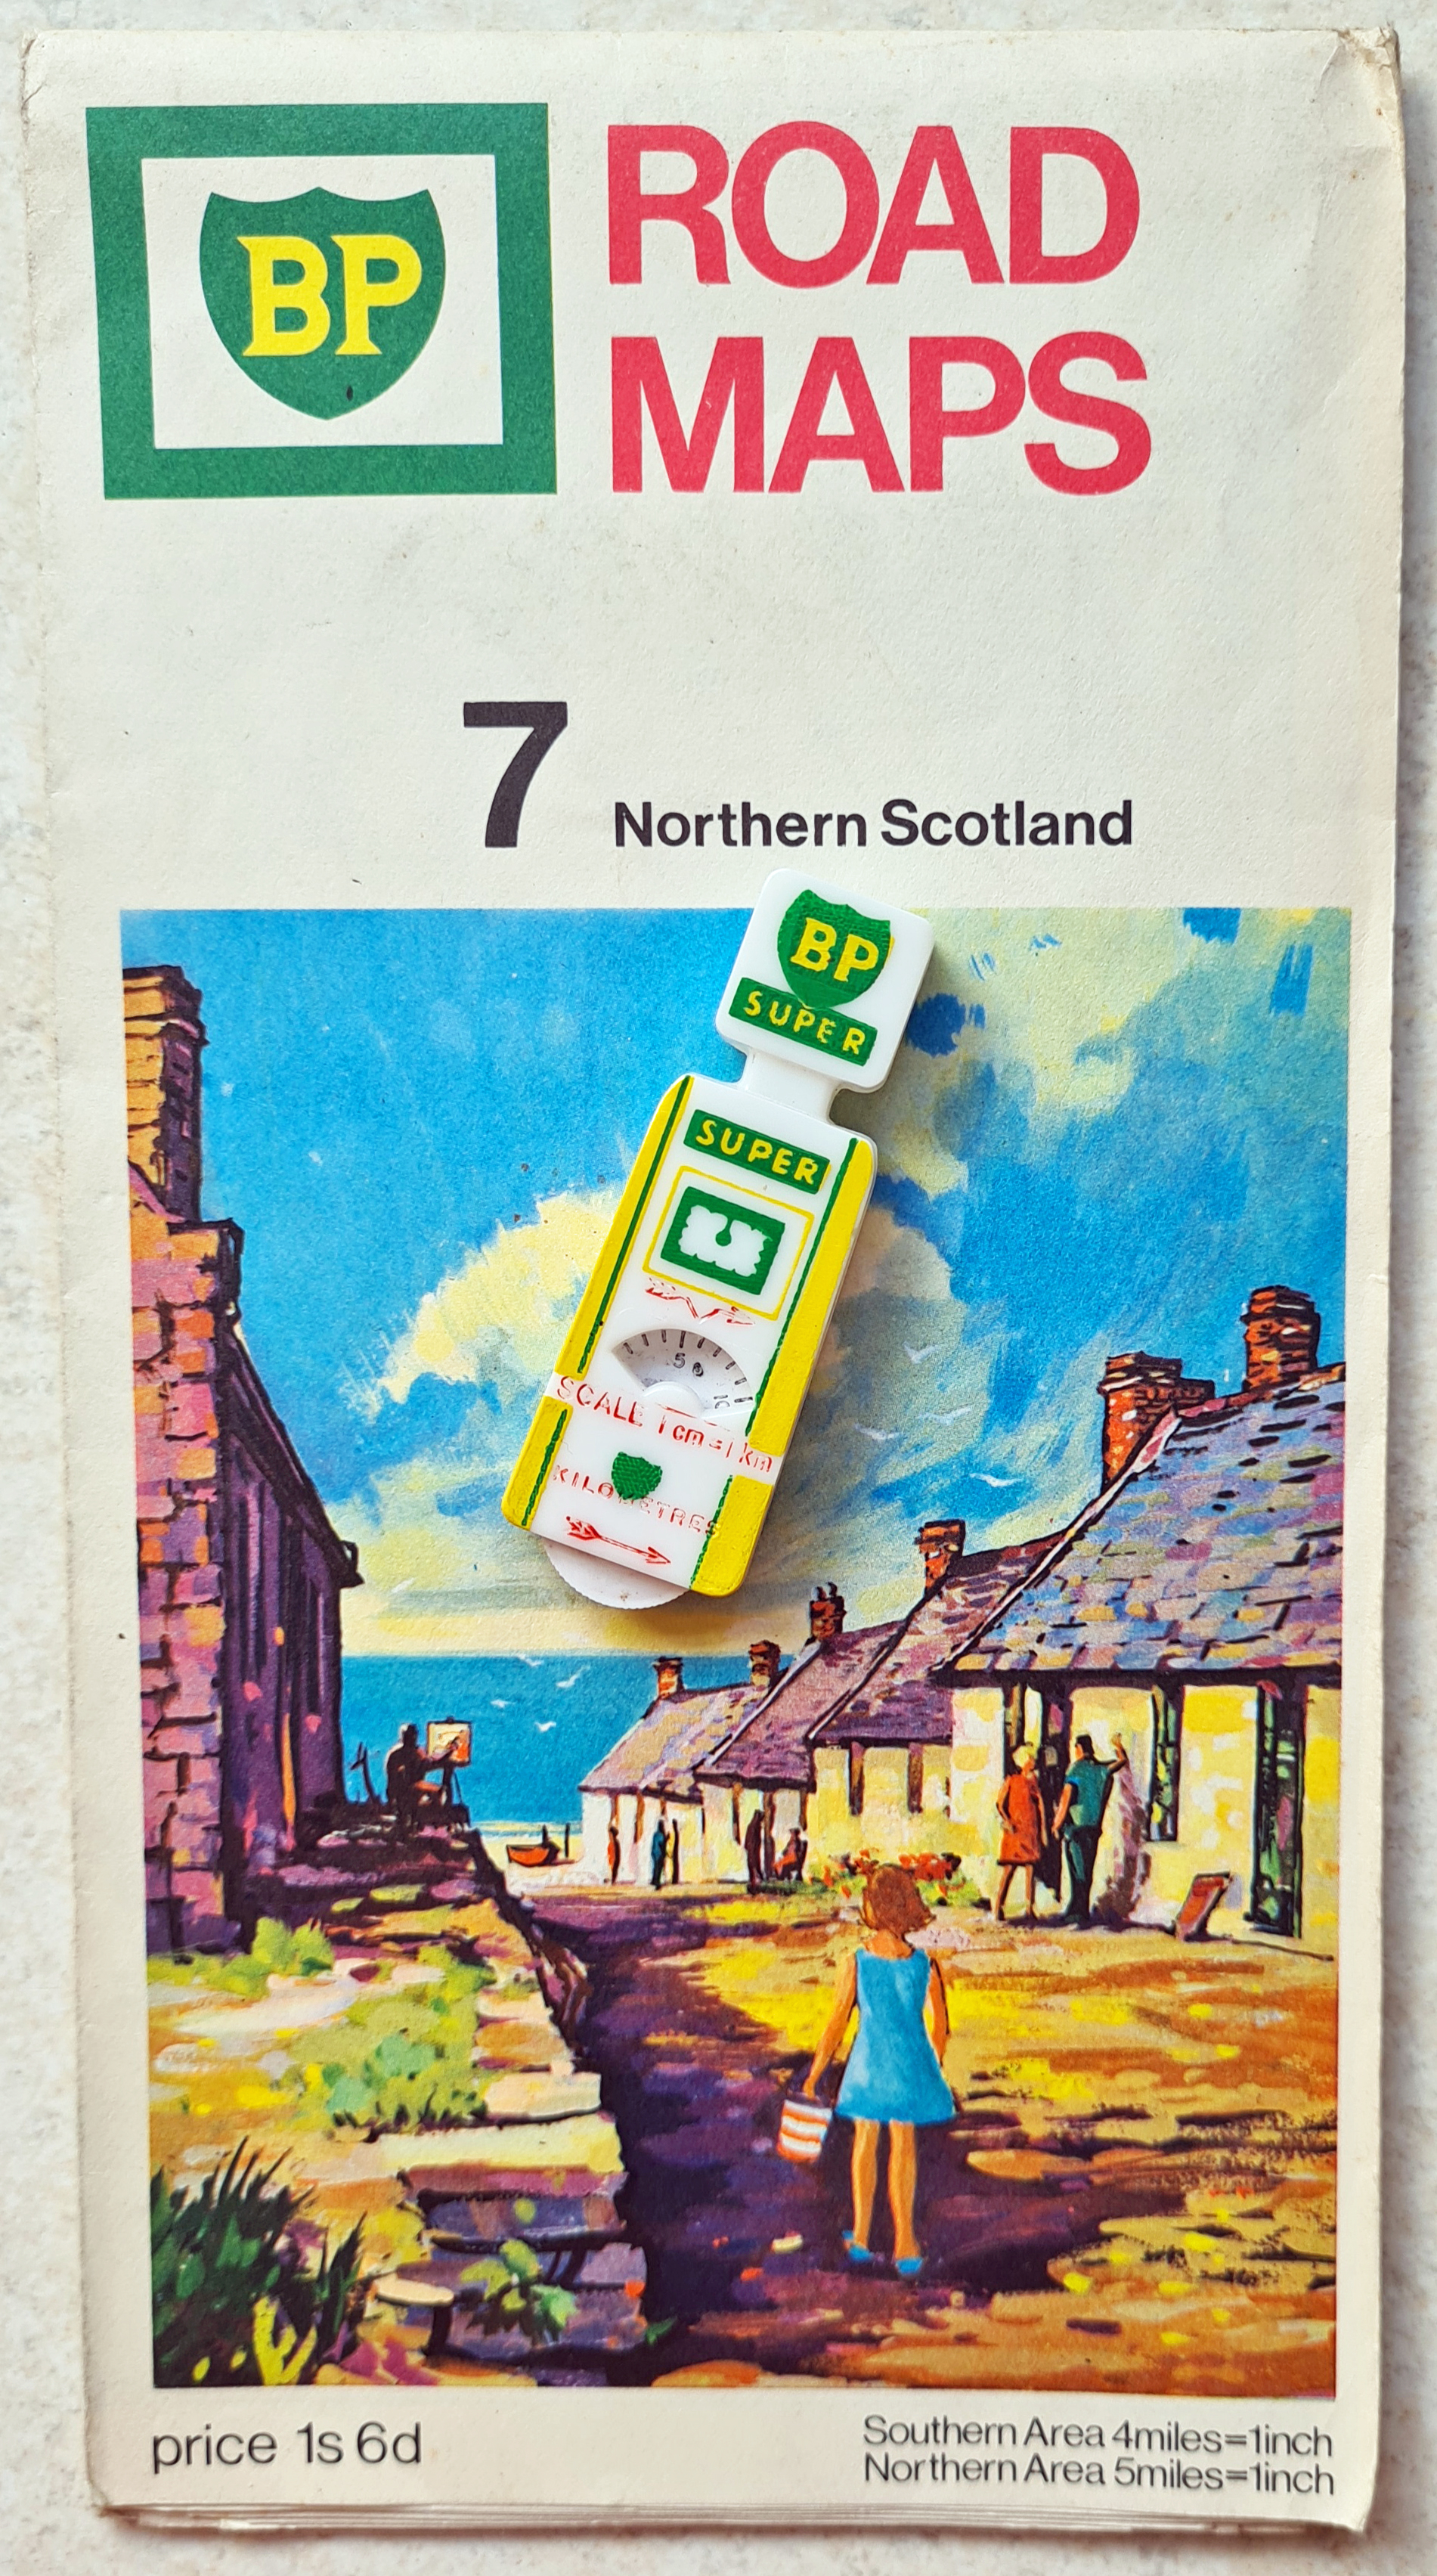 BP Super measure with BP Road Map number 7, covering Northern Scotland. Mapmaker- George Philip & Son Ltd. 1968